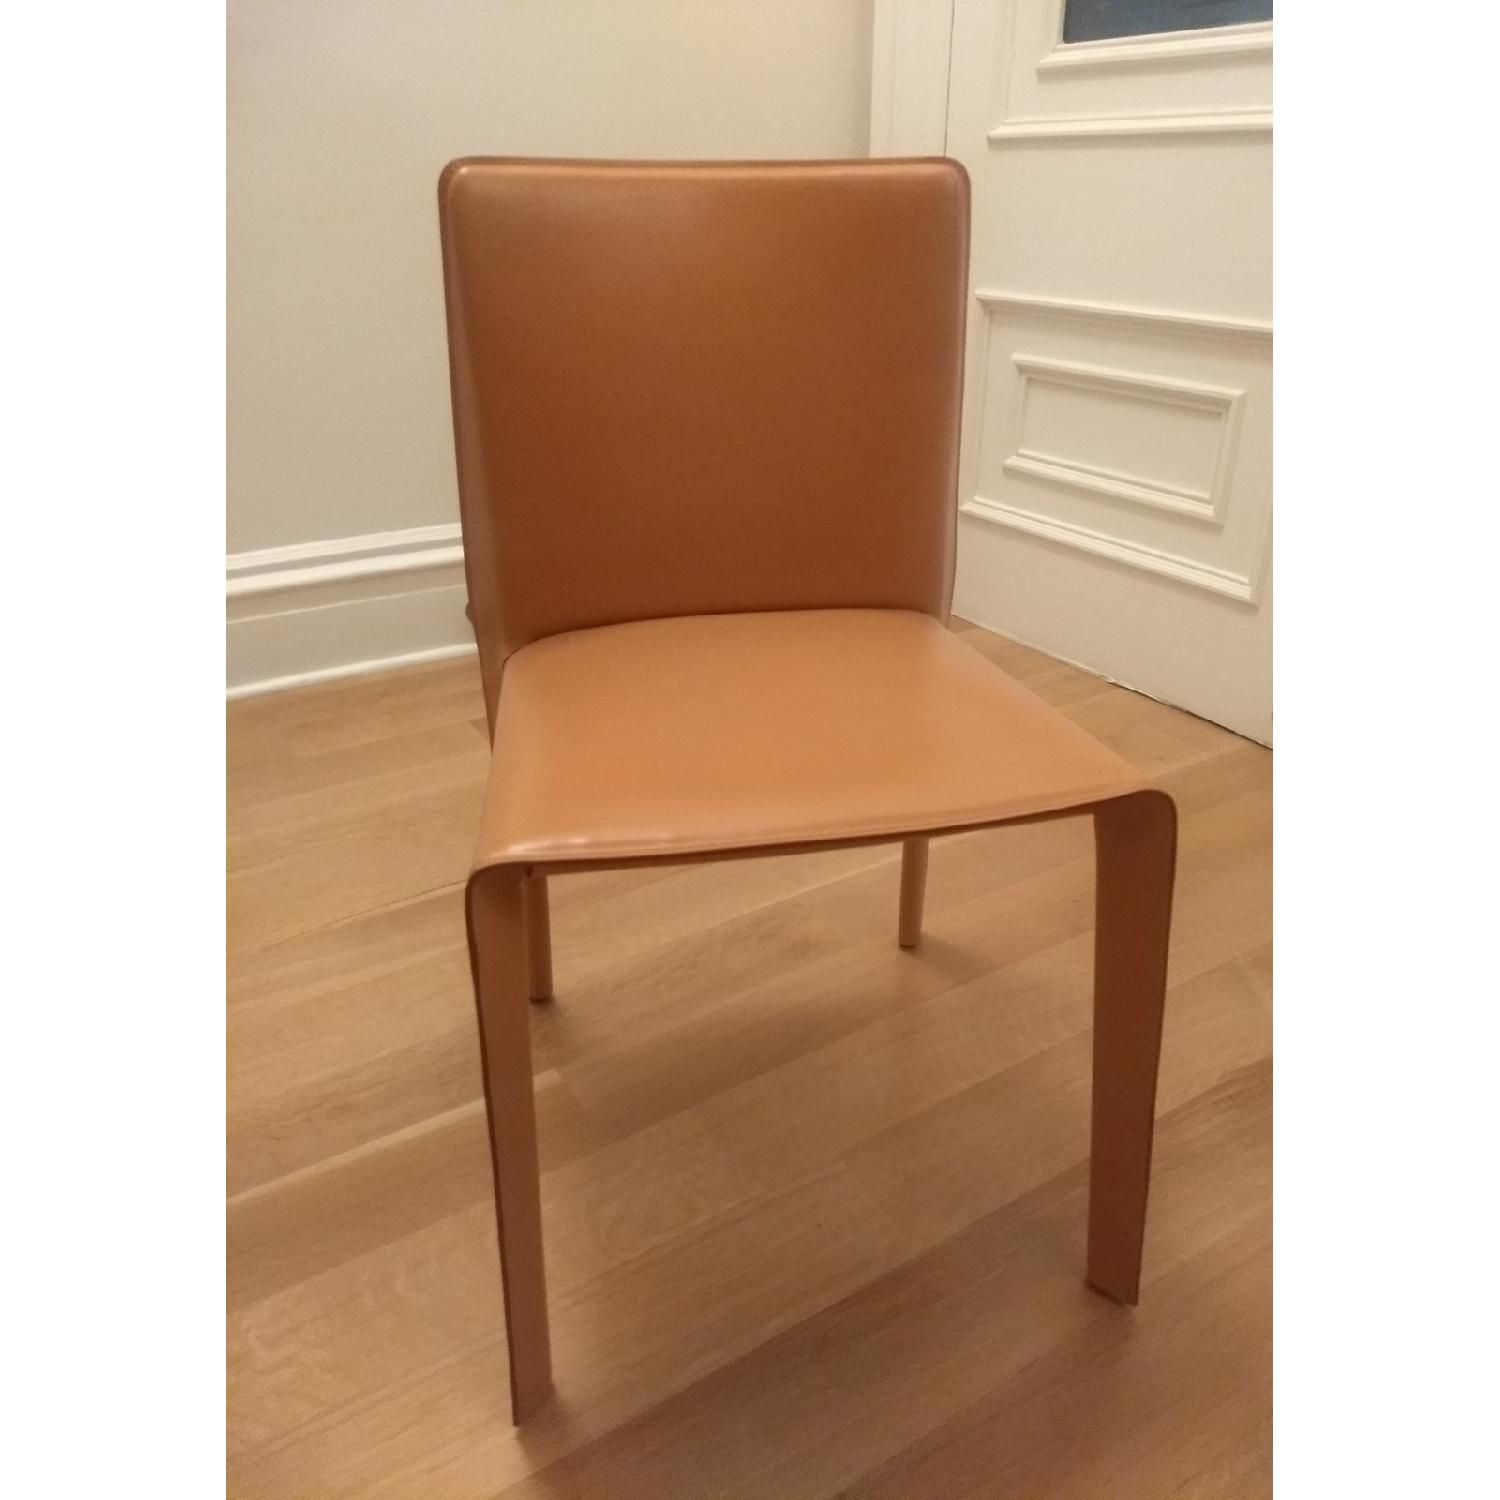 B&B Italia Doyl Dining Chair in Natural Leather-0